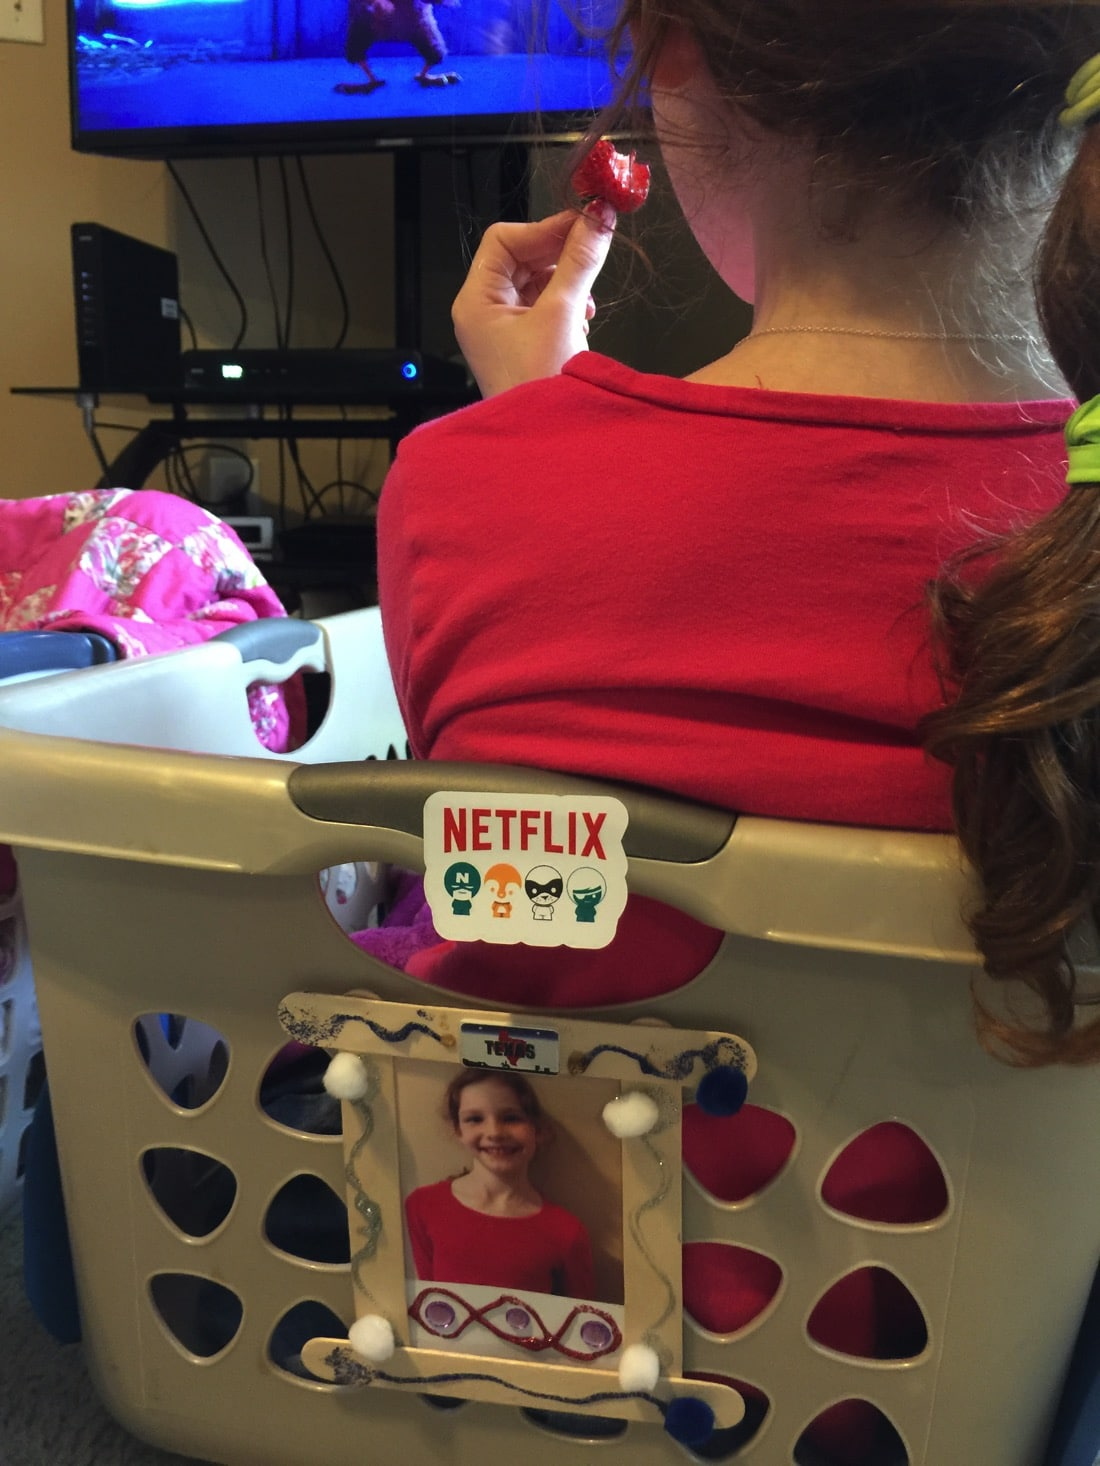 Drive-in movie at home with netflix